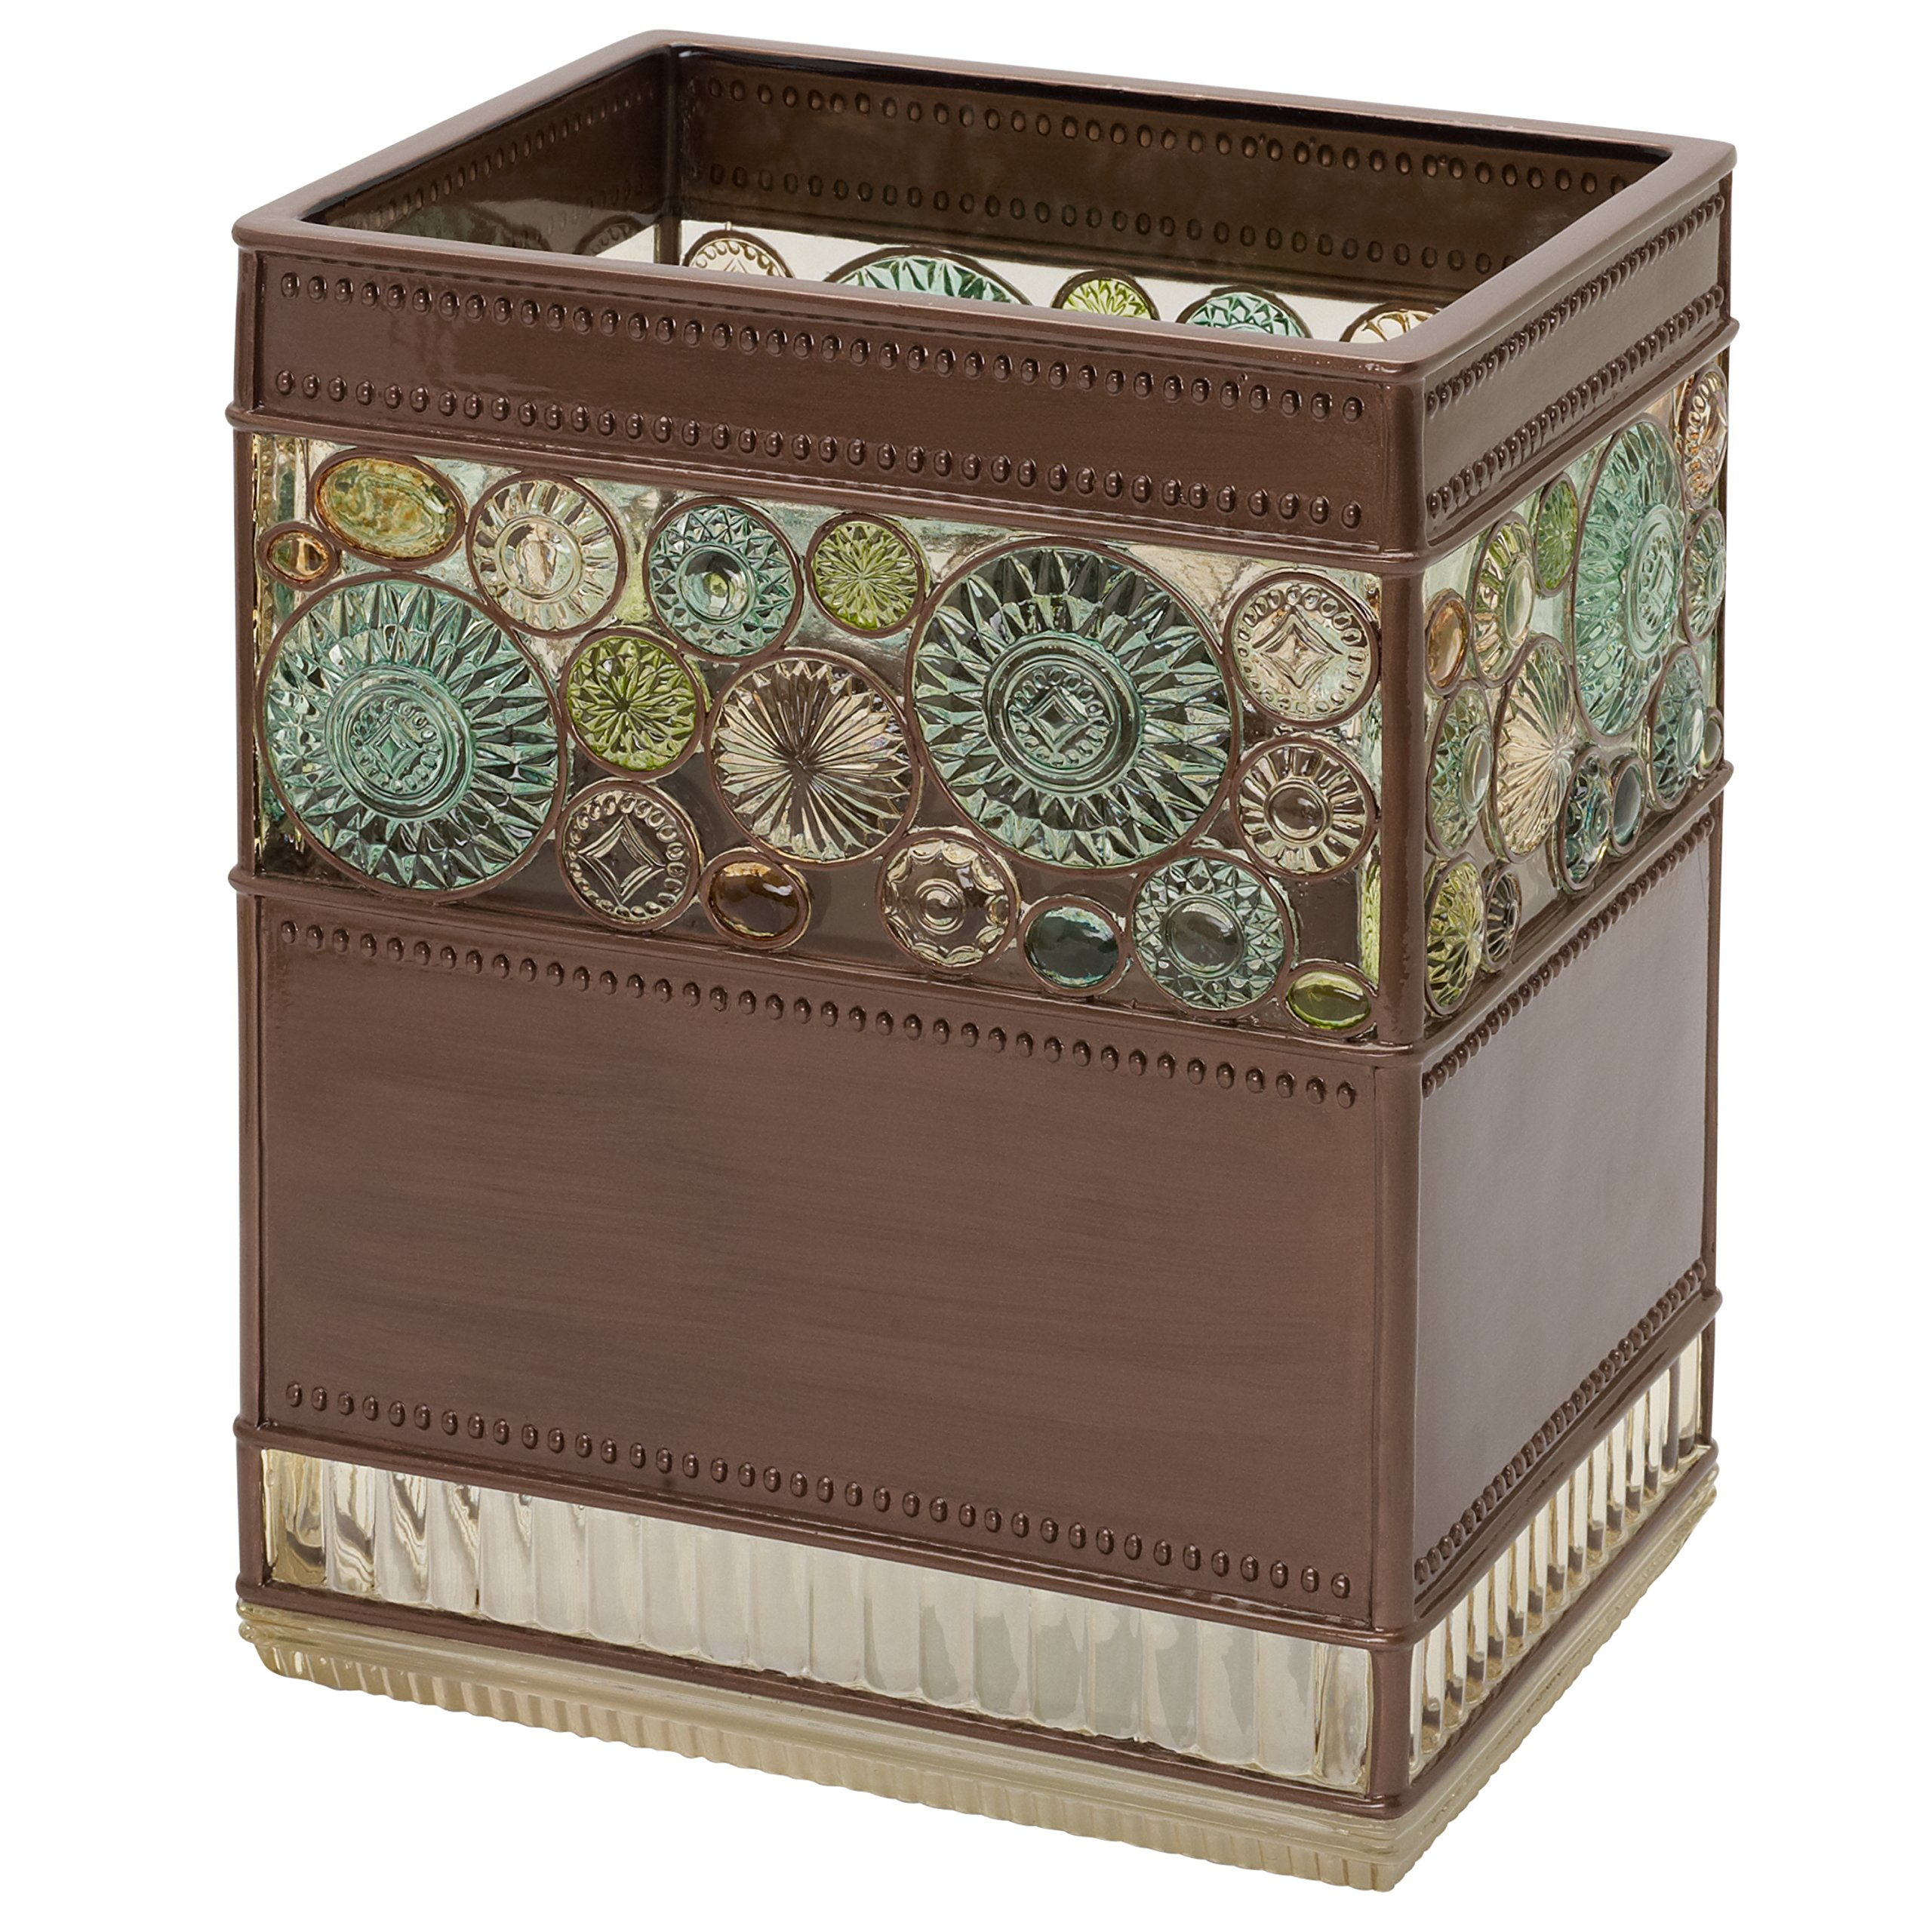 Zenna Home, India Ink Boddington Waste Basket, Bronze with Translucent Colors